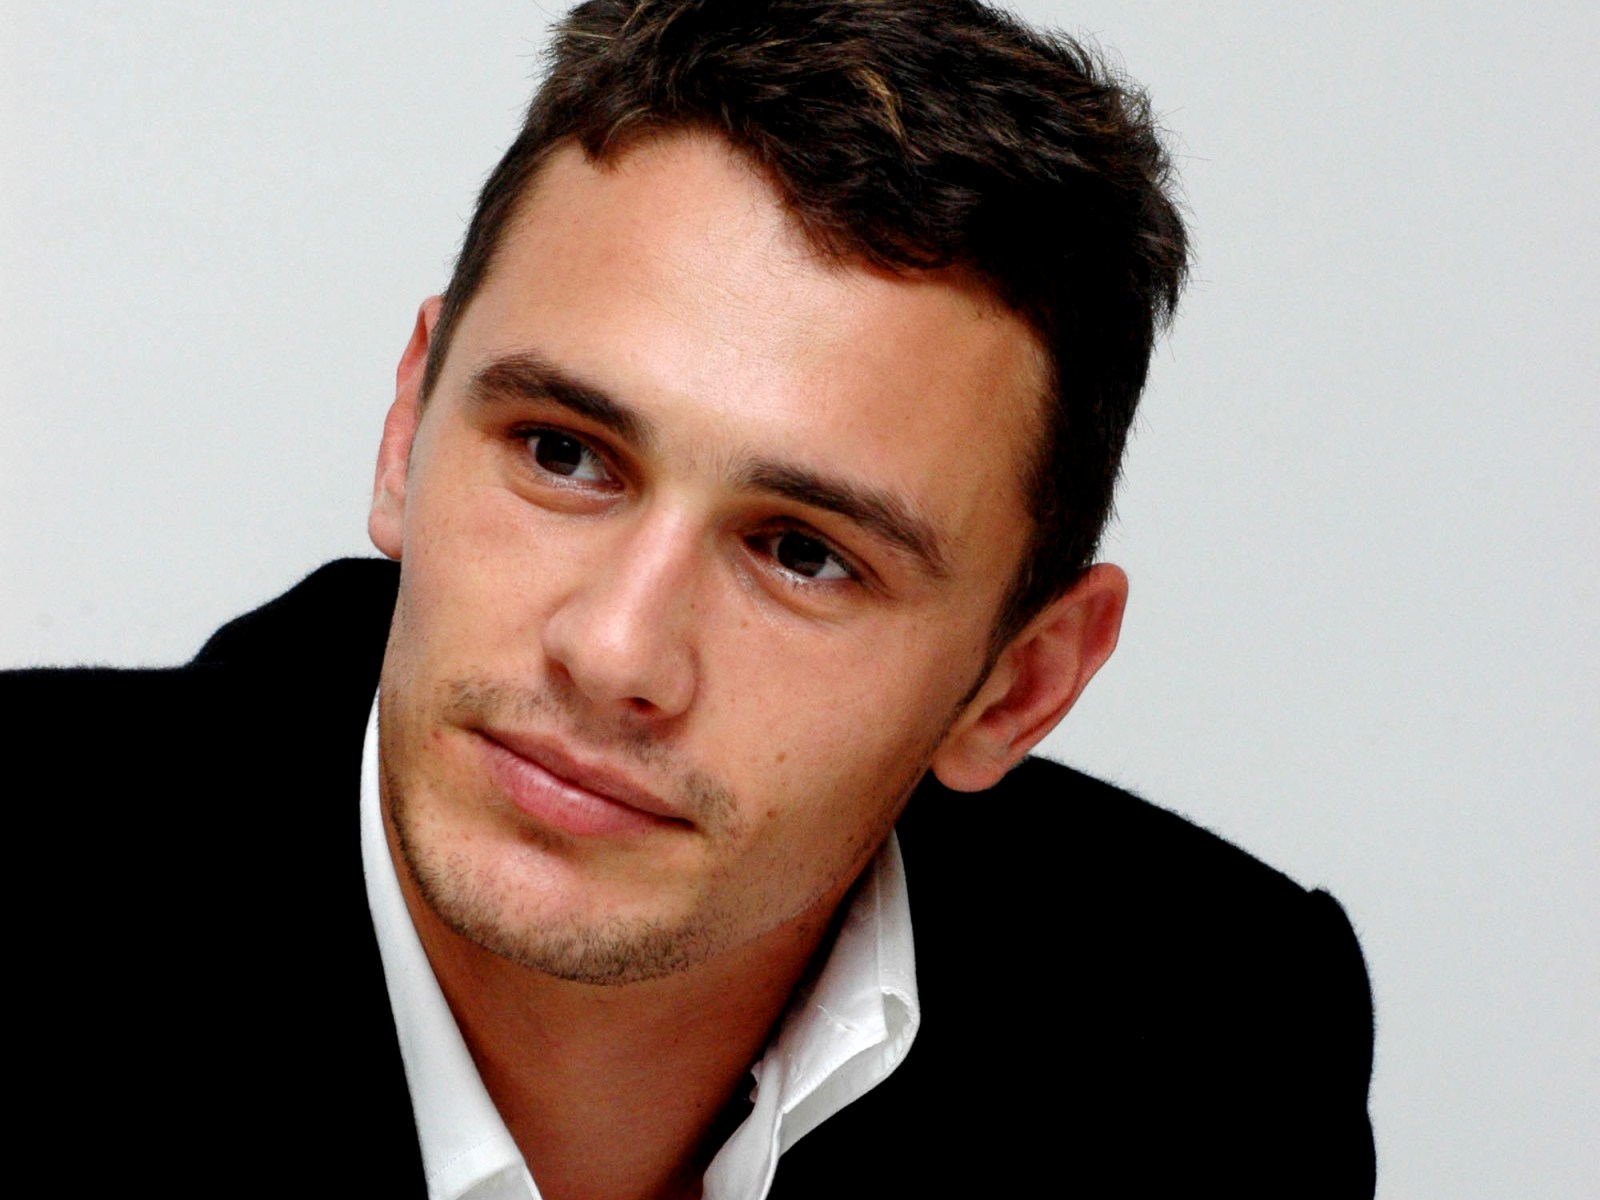 james franco wikijames franco instagram, james franco movies, james franco why him, james franco gif, james franco brother, james franco height, james franco 2016, james franco фильмы, james franco tumblr, james franco paintings, james franco 2017, james franco wiki, james franco tattoos, james franco vk, james franco инстаграм, james franco interview, james franco the room, james franco twitter, james franco imdb, james franco instagram official